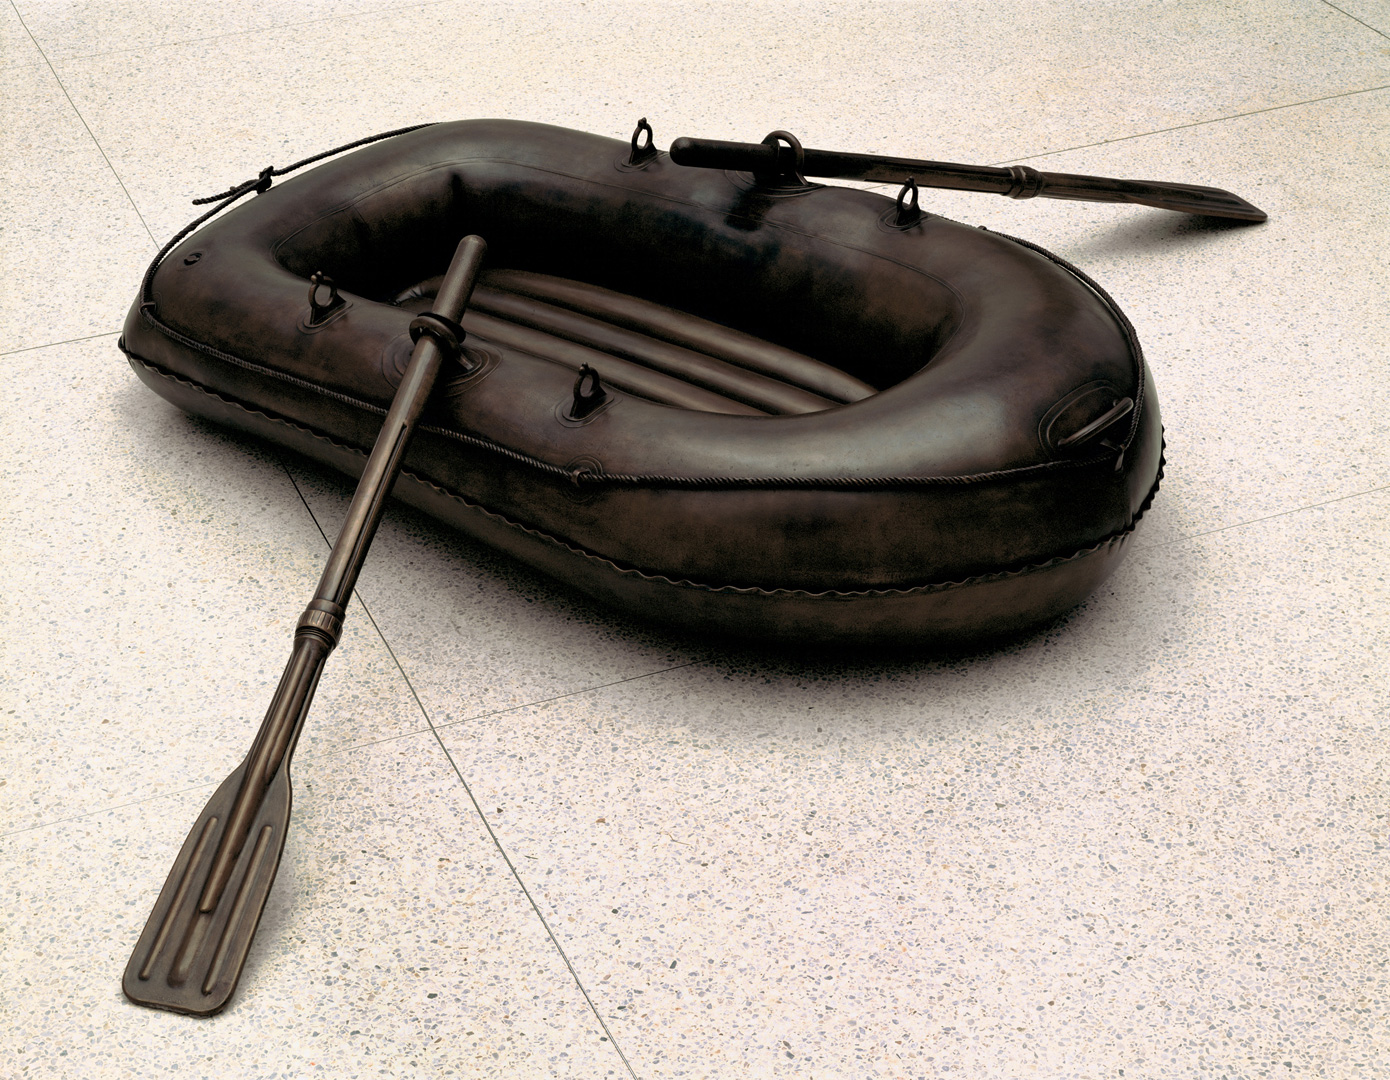 Jeff Koons - Lifeboat, 1985, bronze